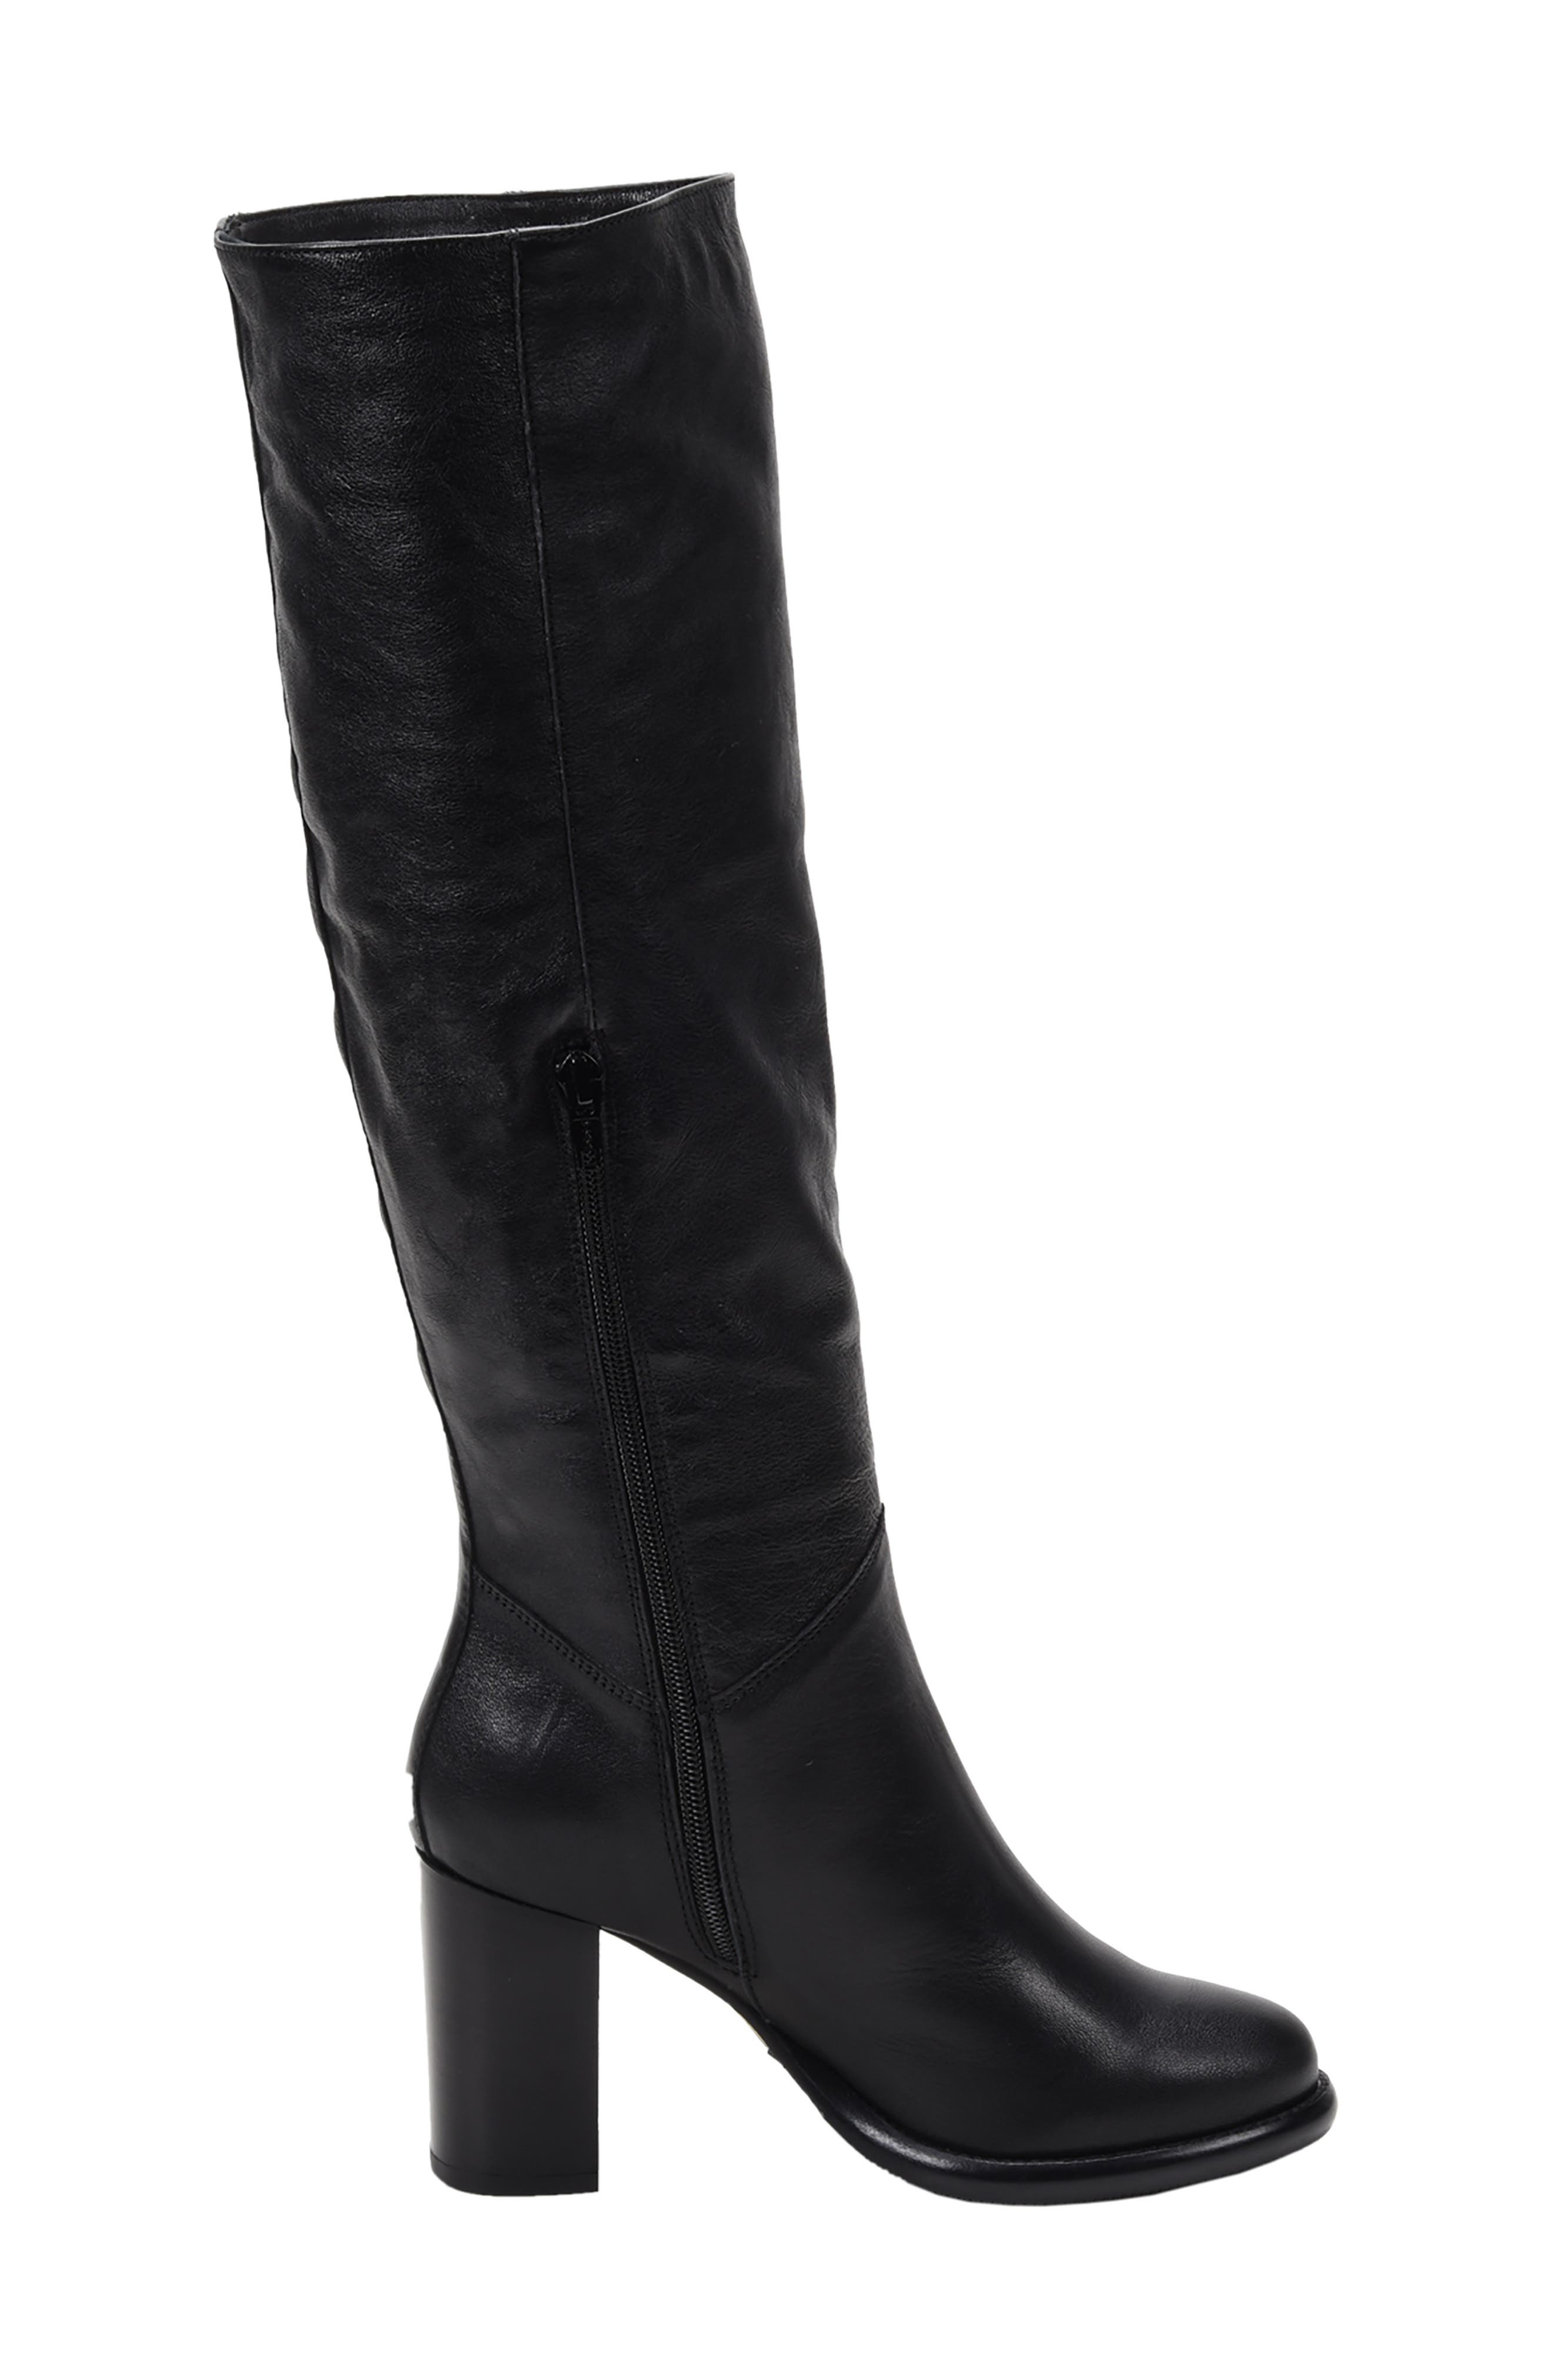 Michela SP Waterproof Genuine Shearling Lined Boot,                             Alternate thumbnail 8, color,                             BLACK METALLIC LEATHER